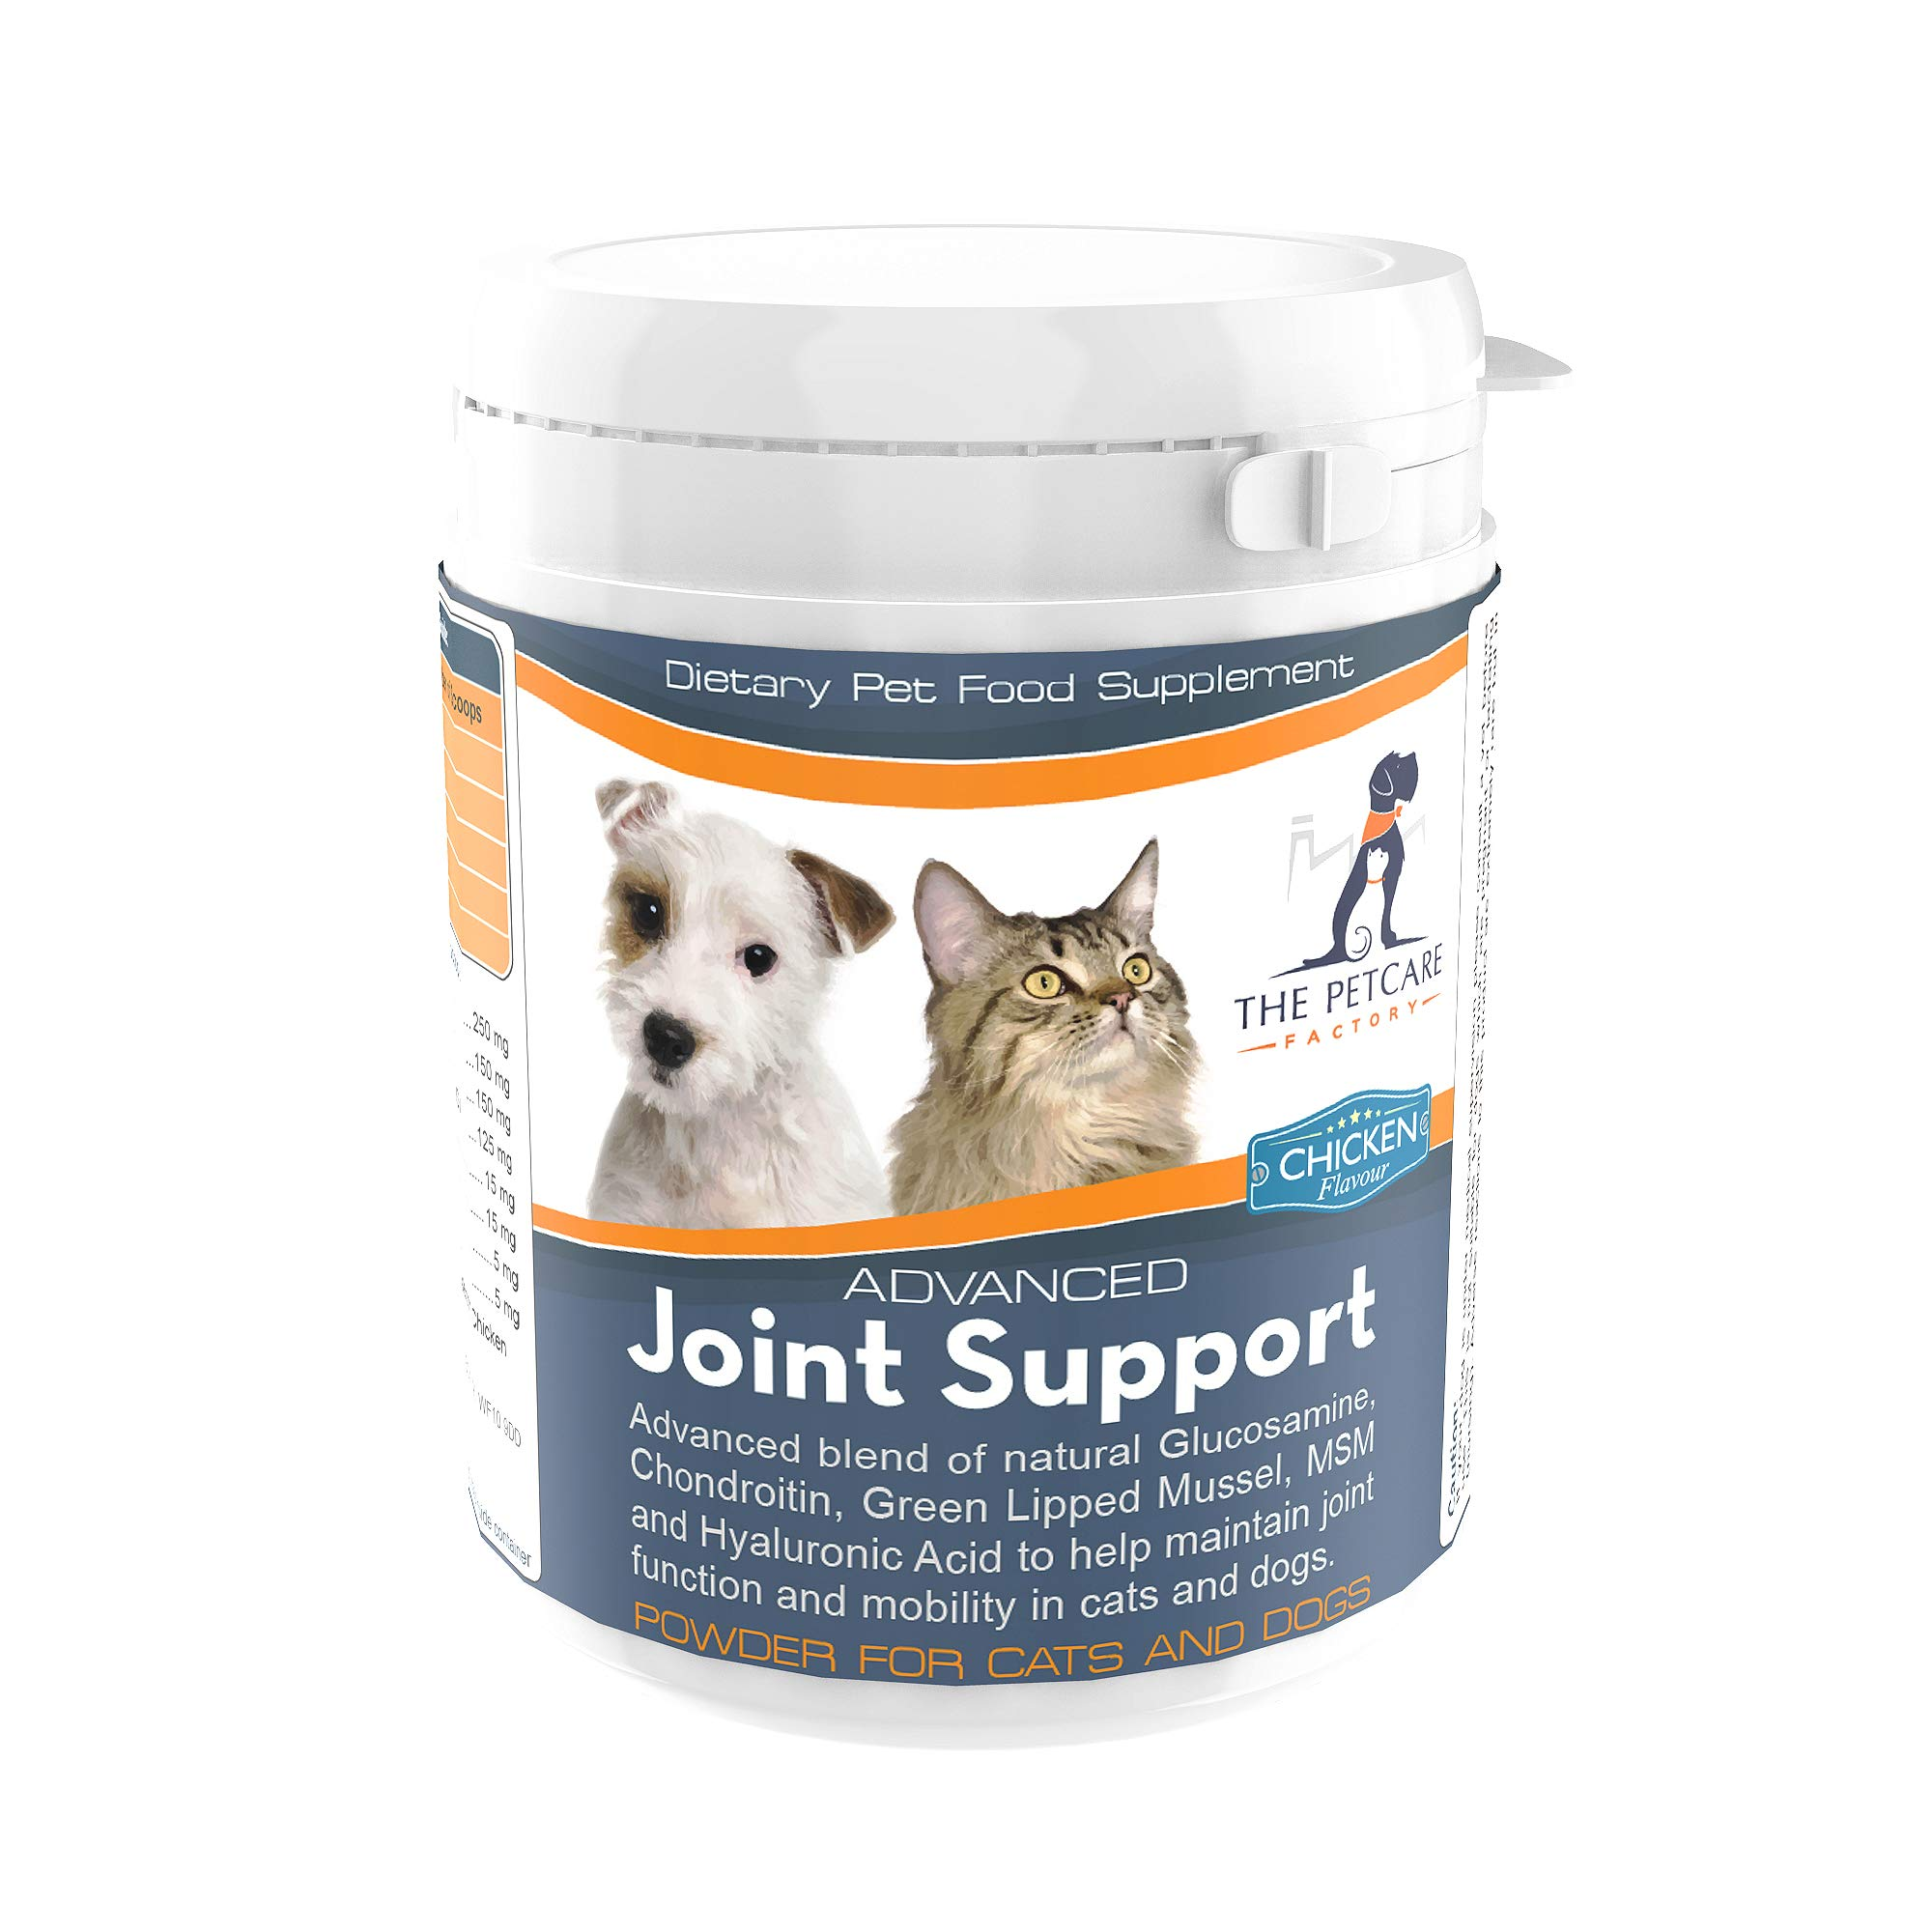 Advanced Joint Support Supplement Powder For Cats & Dogs, With Powerful Glucosamine, Chondroitin, Green Lipped Mussel…